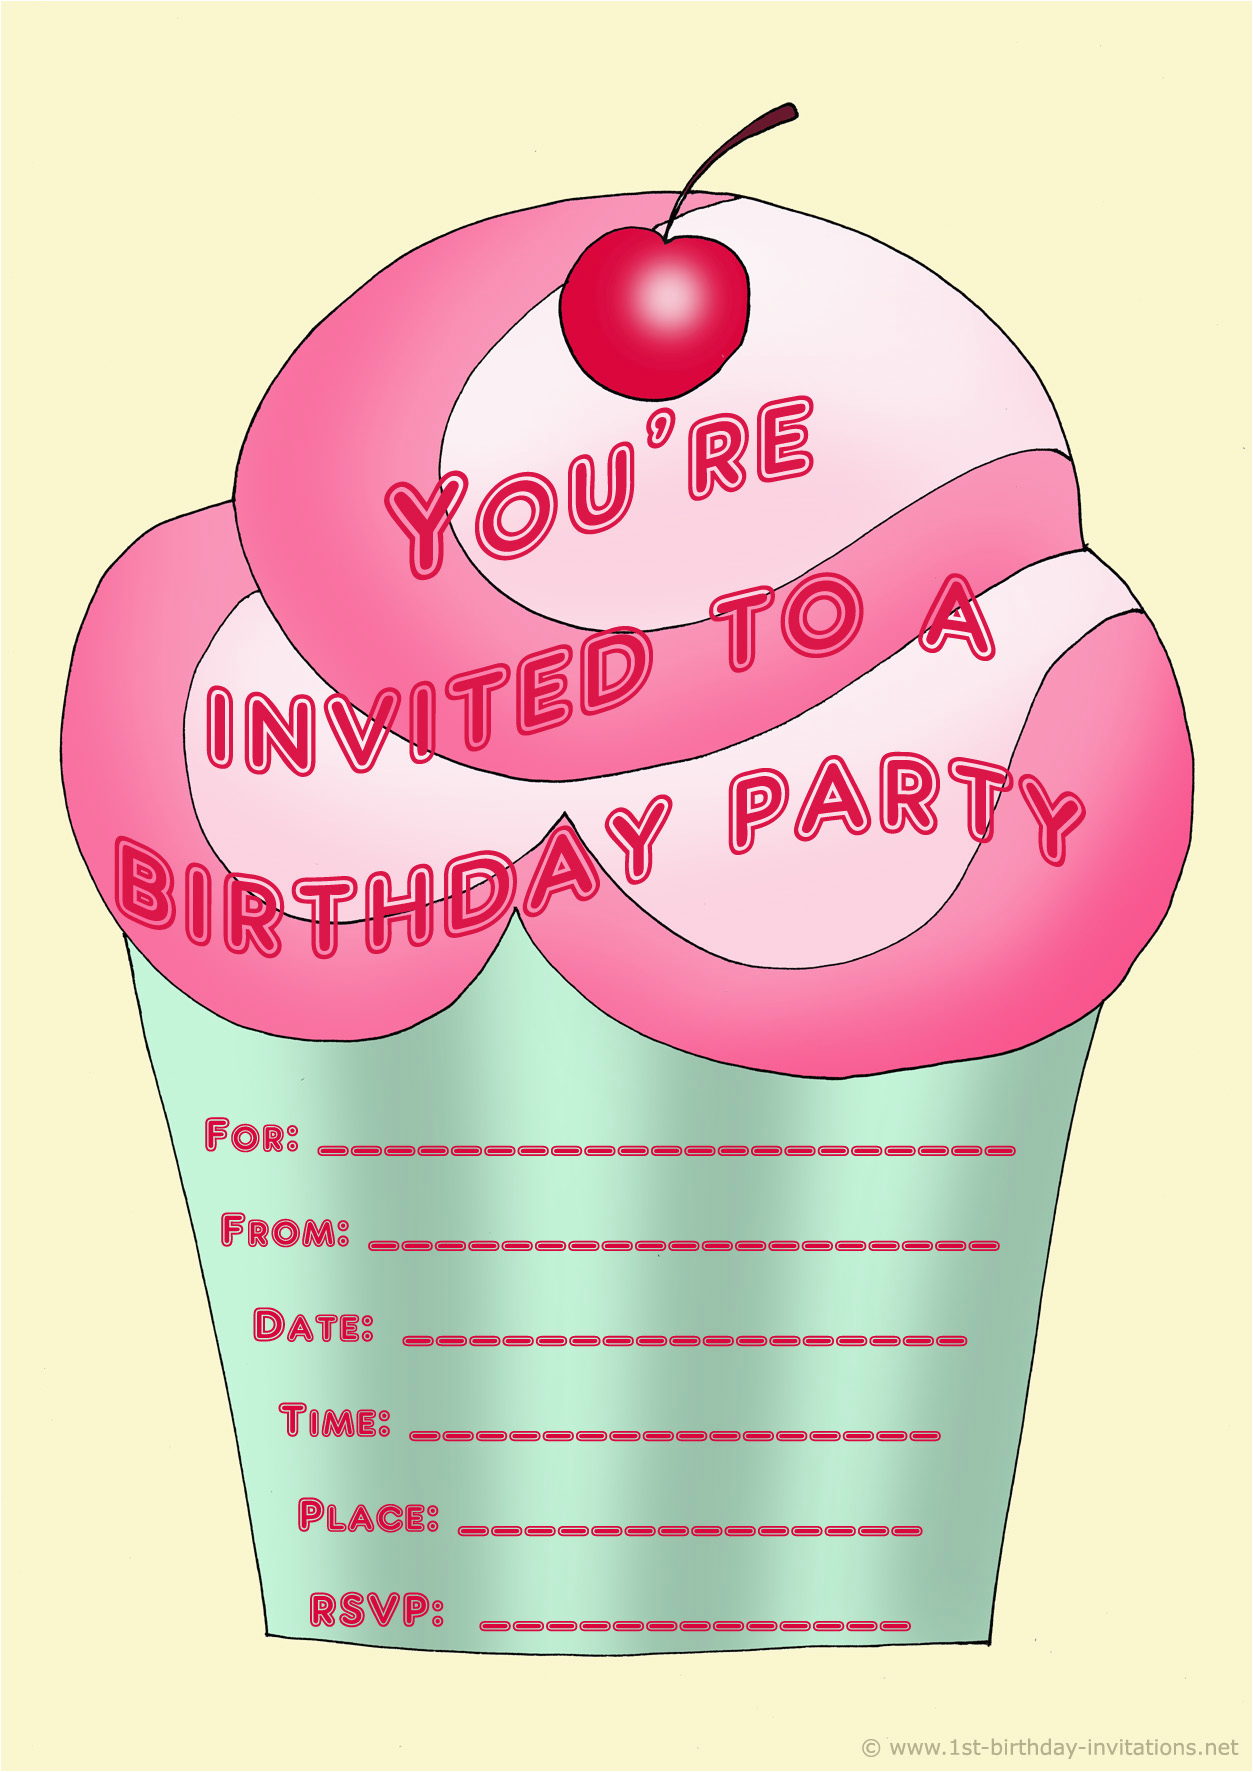 Customized Birthday Invitations Online Free Printable Personalized For Kids 1st